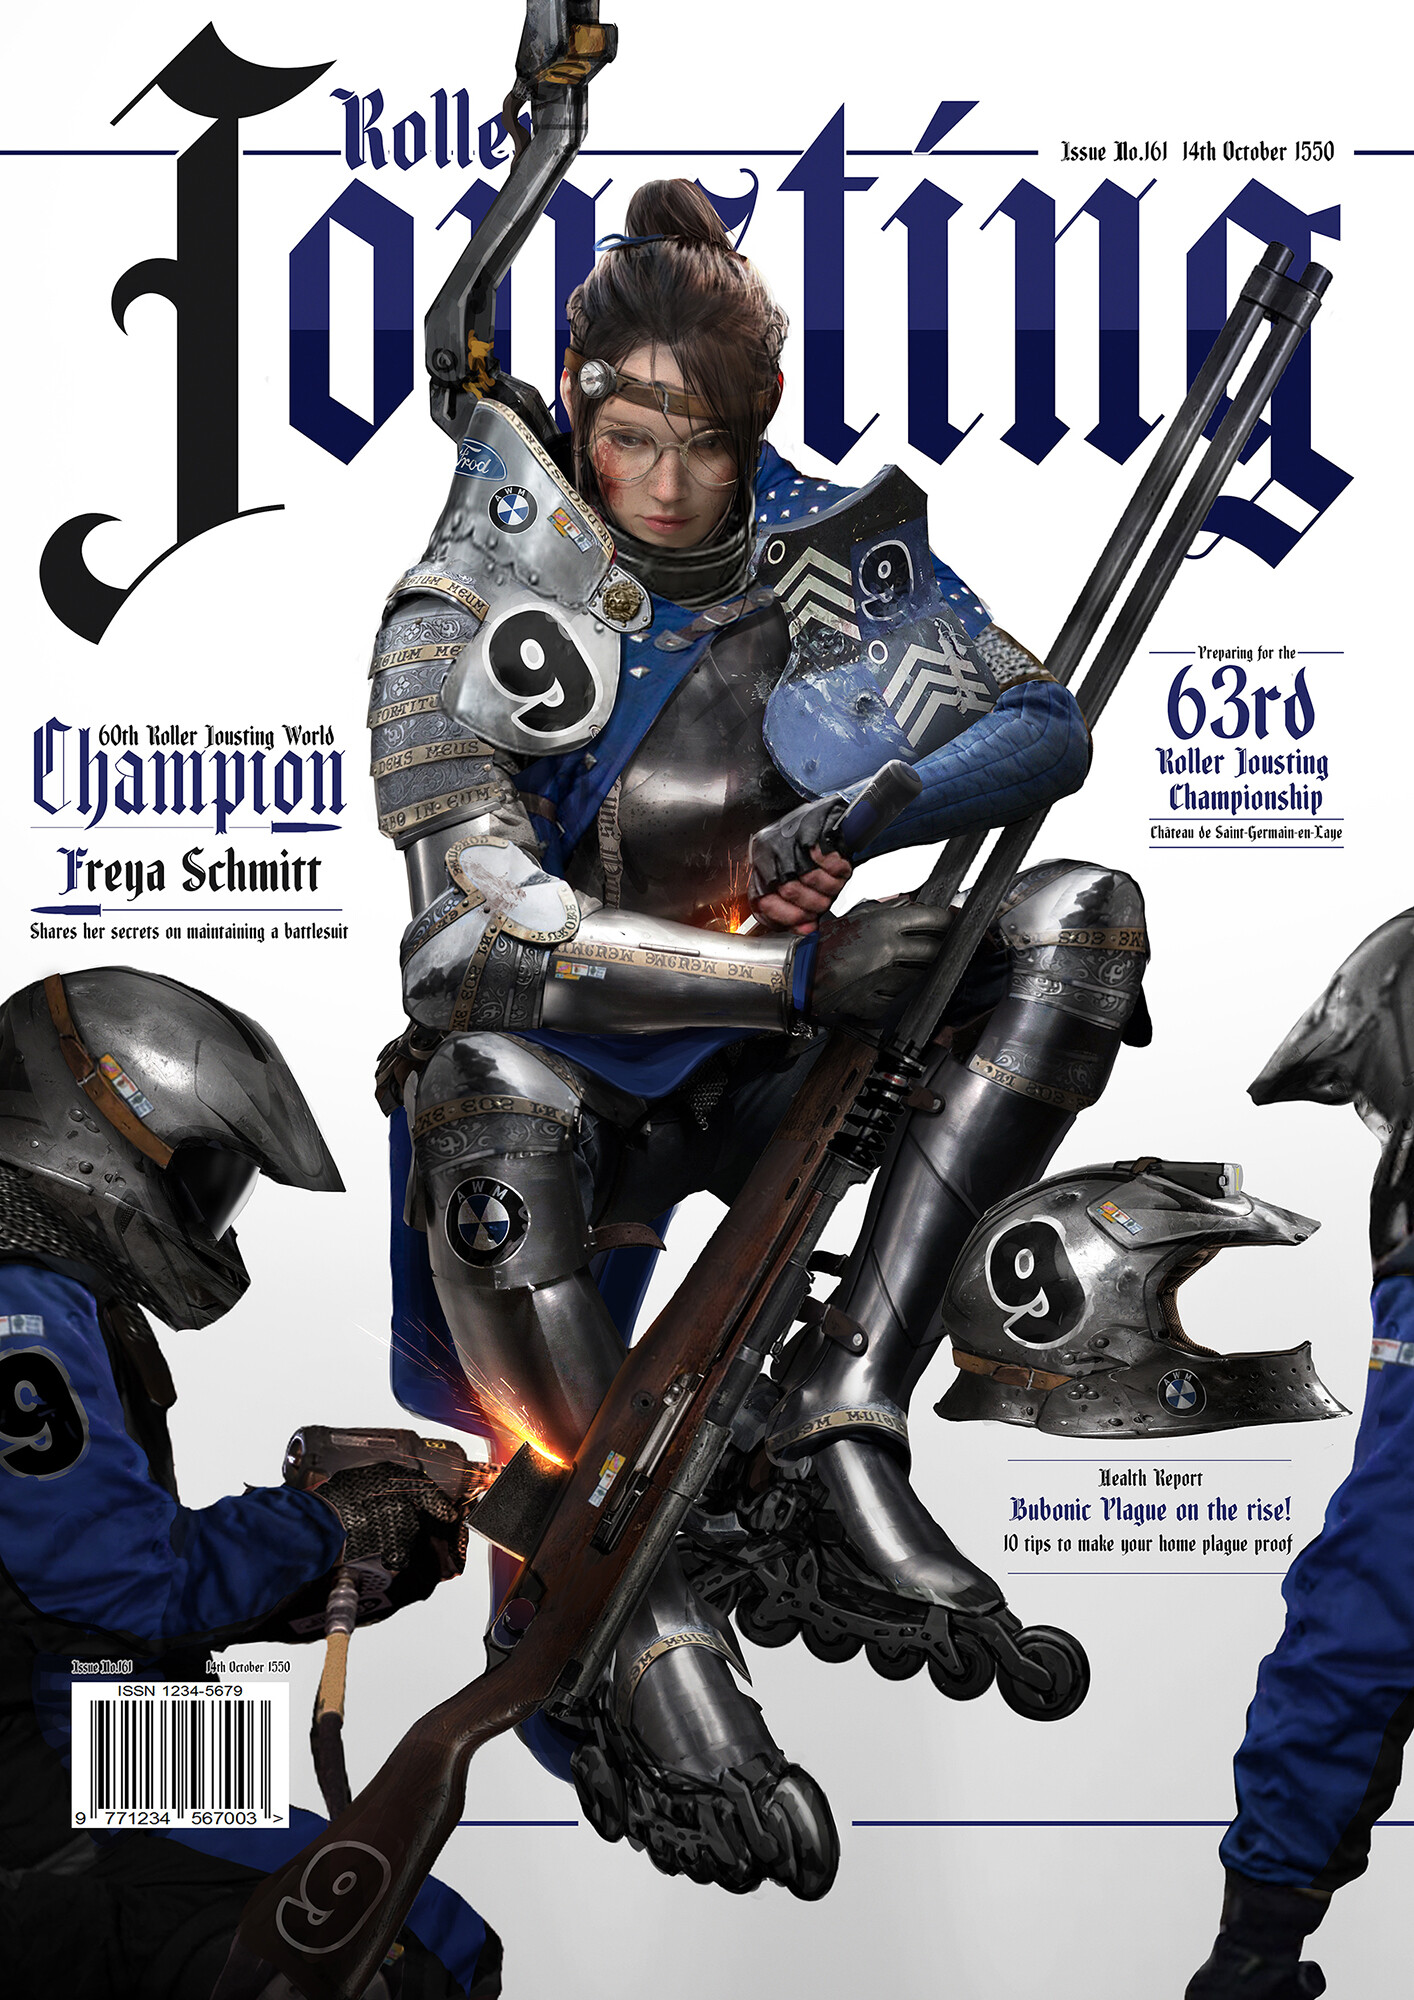 Johnson ting rollerjousting afterbattle2 magazinebg2